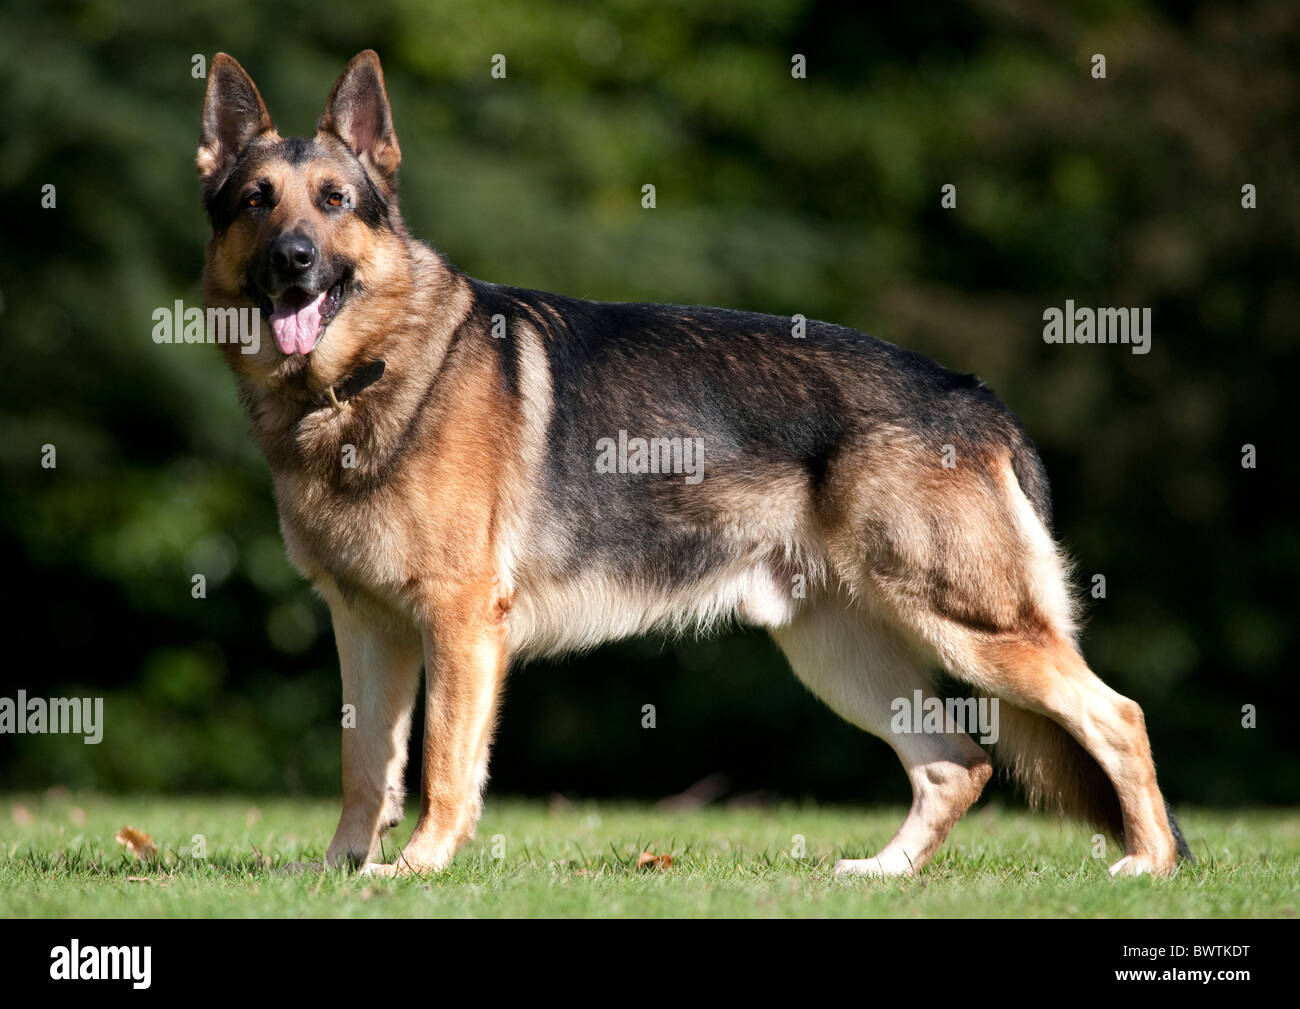 German Shepherd Dog Alsatian Standing in park UK Stock Photo